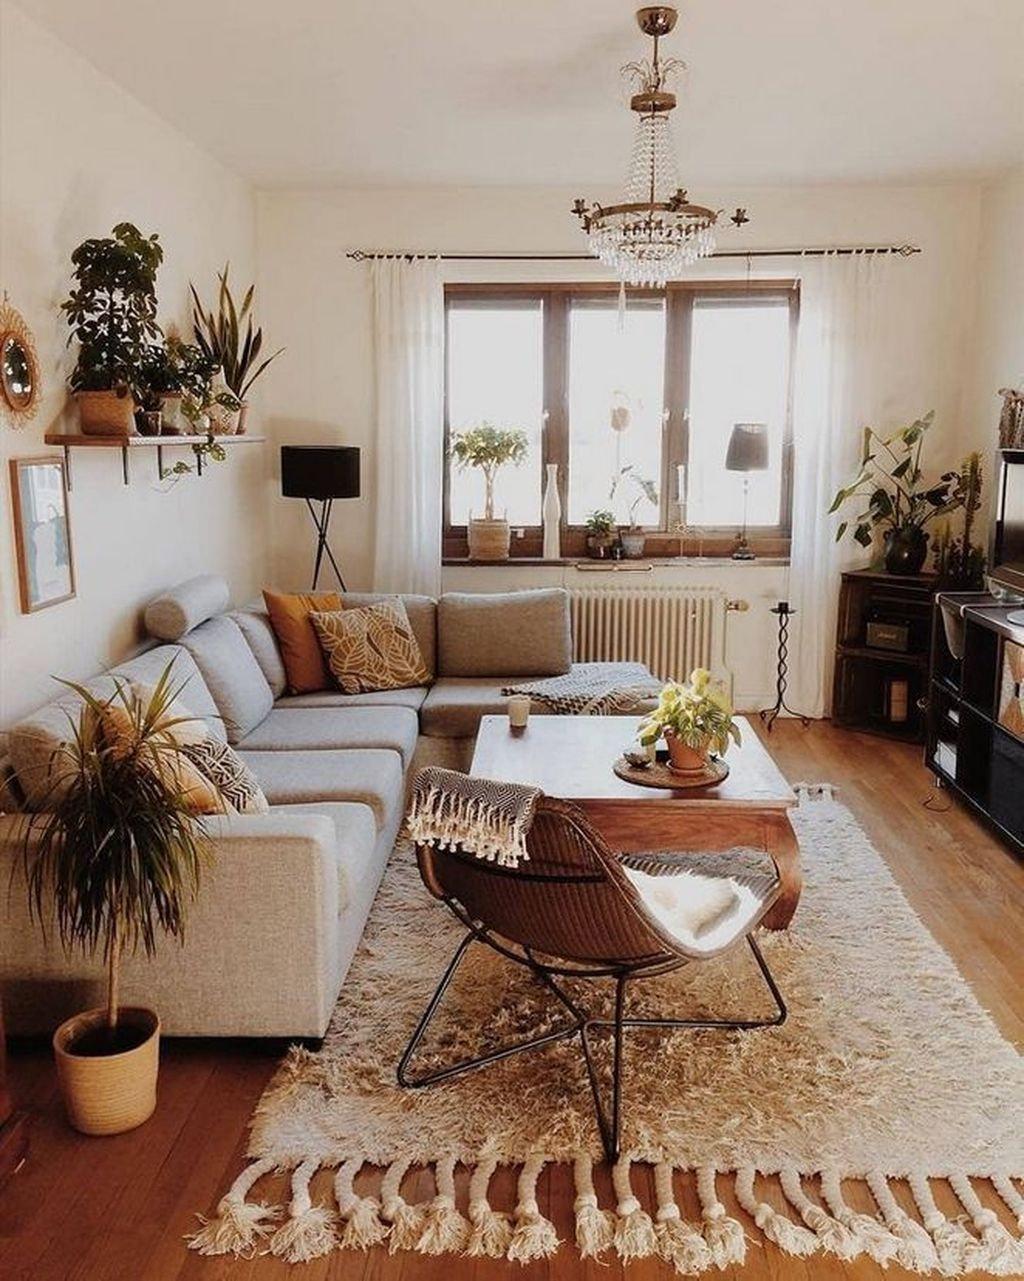 Perfect Apartment Living Room Decor Ideas On A Budget05